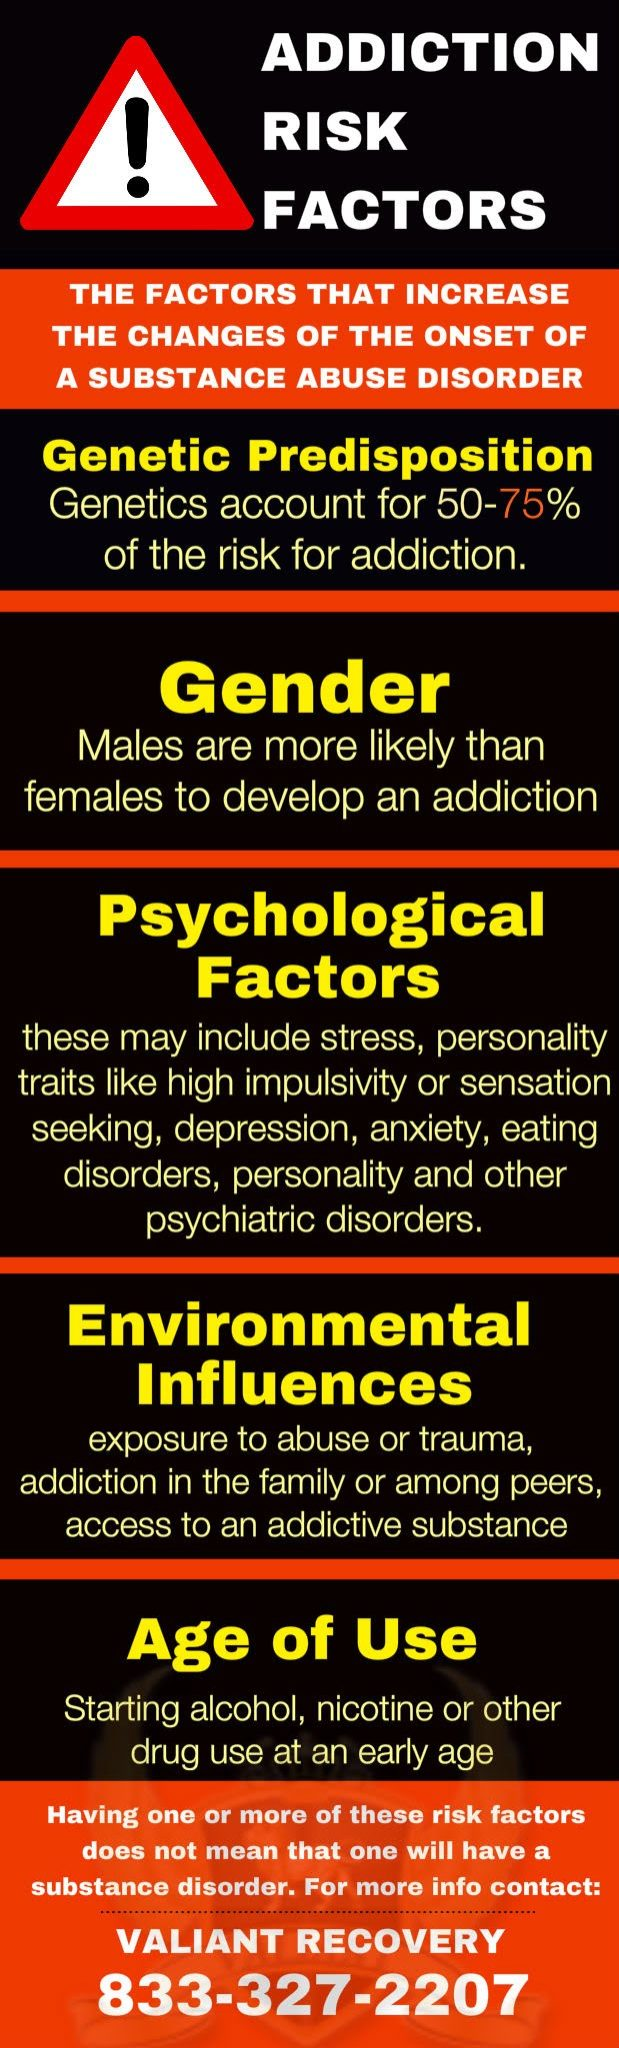 Addiction Risk Factors - infographic